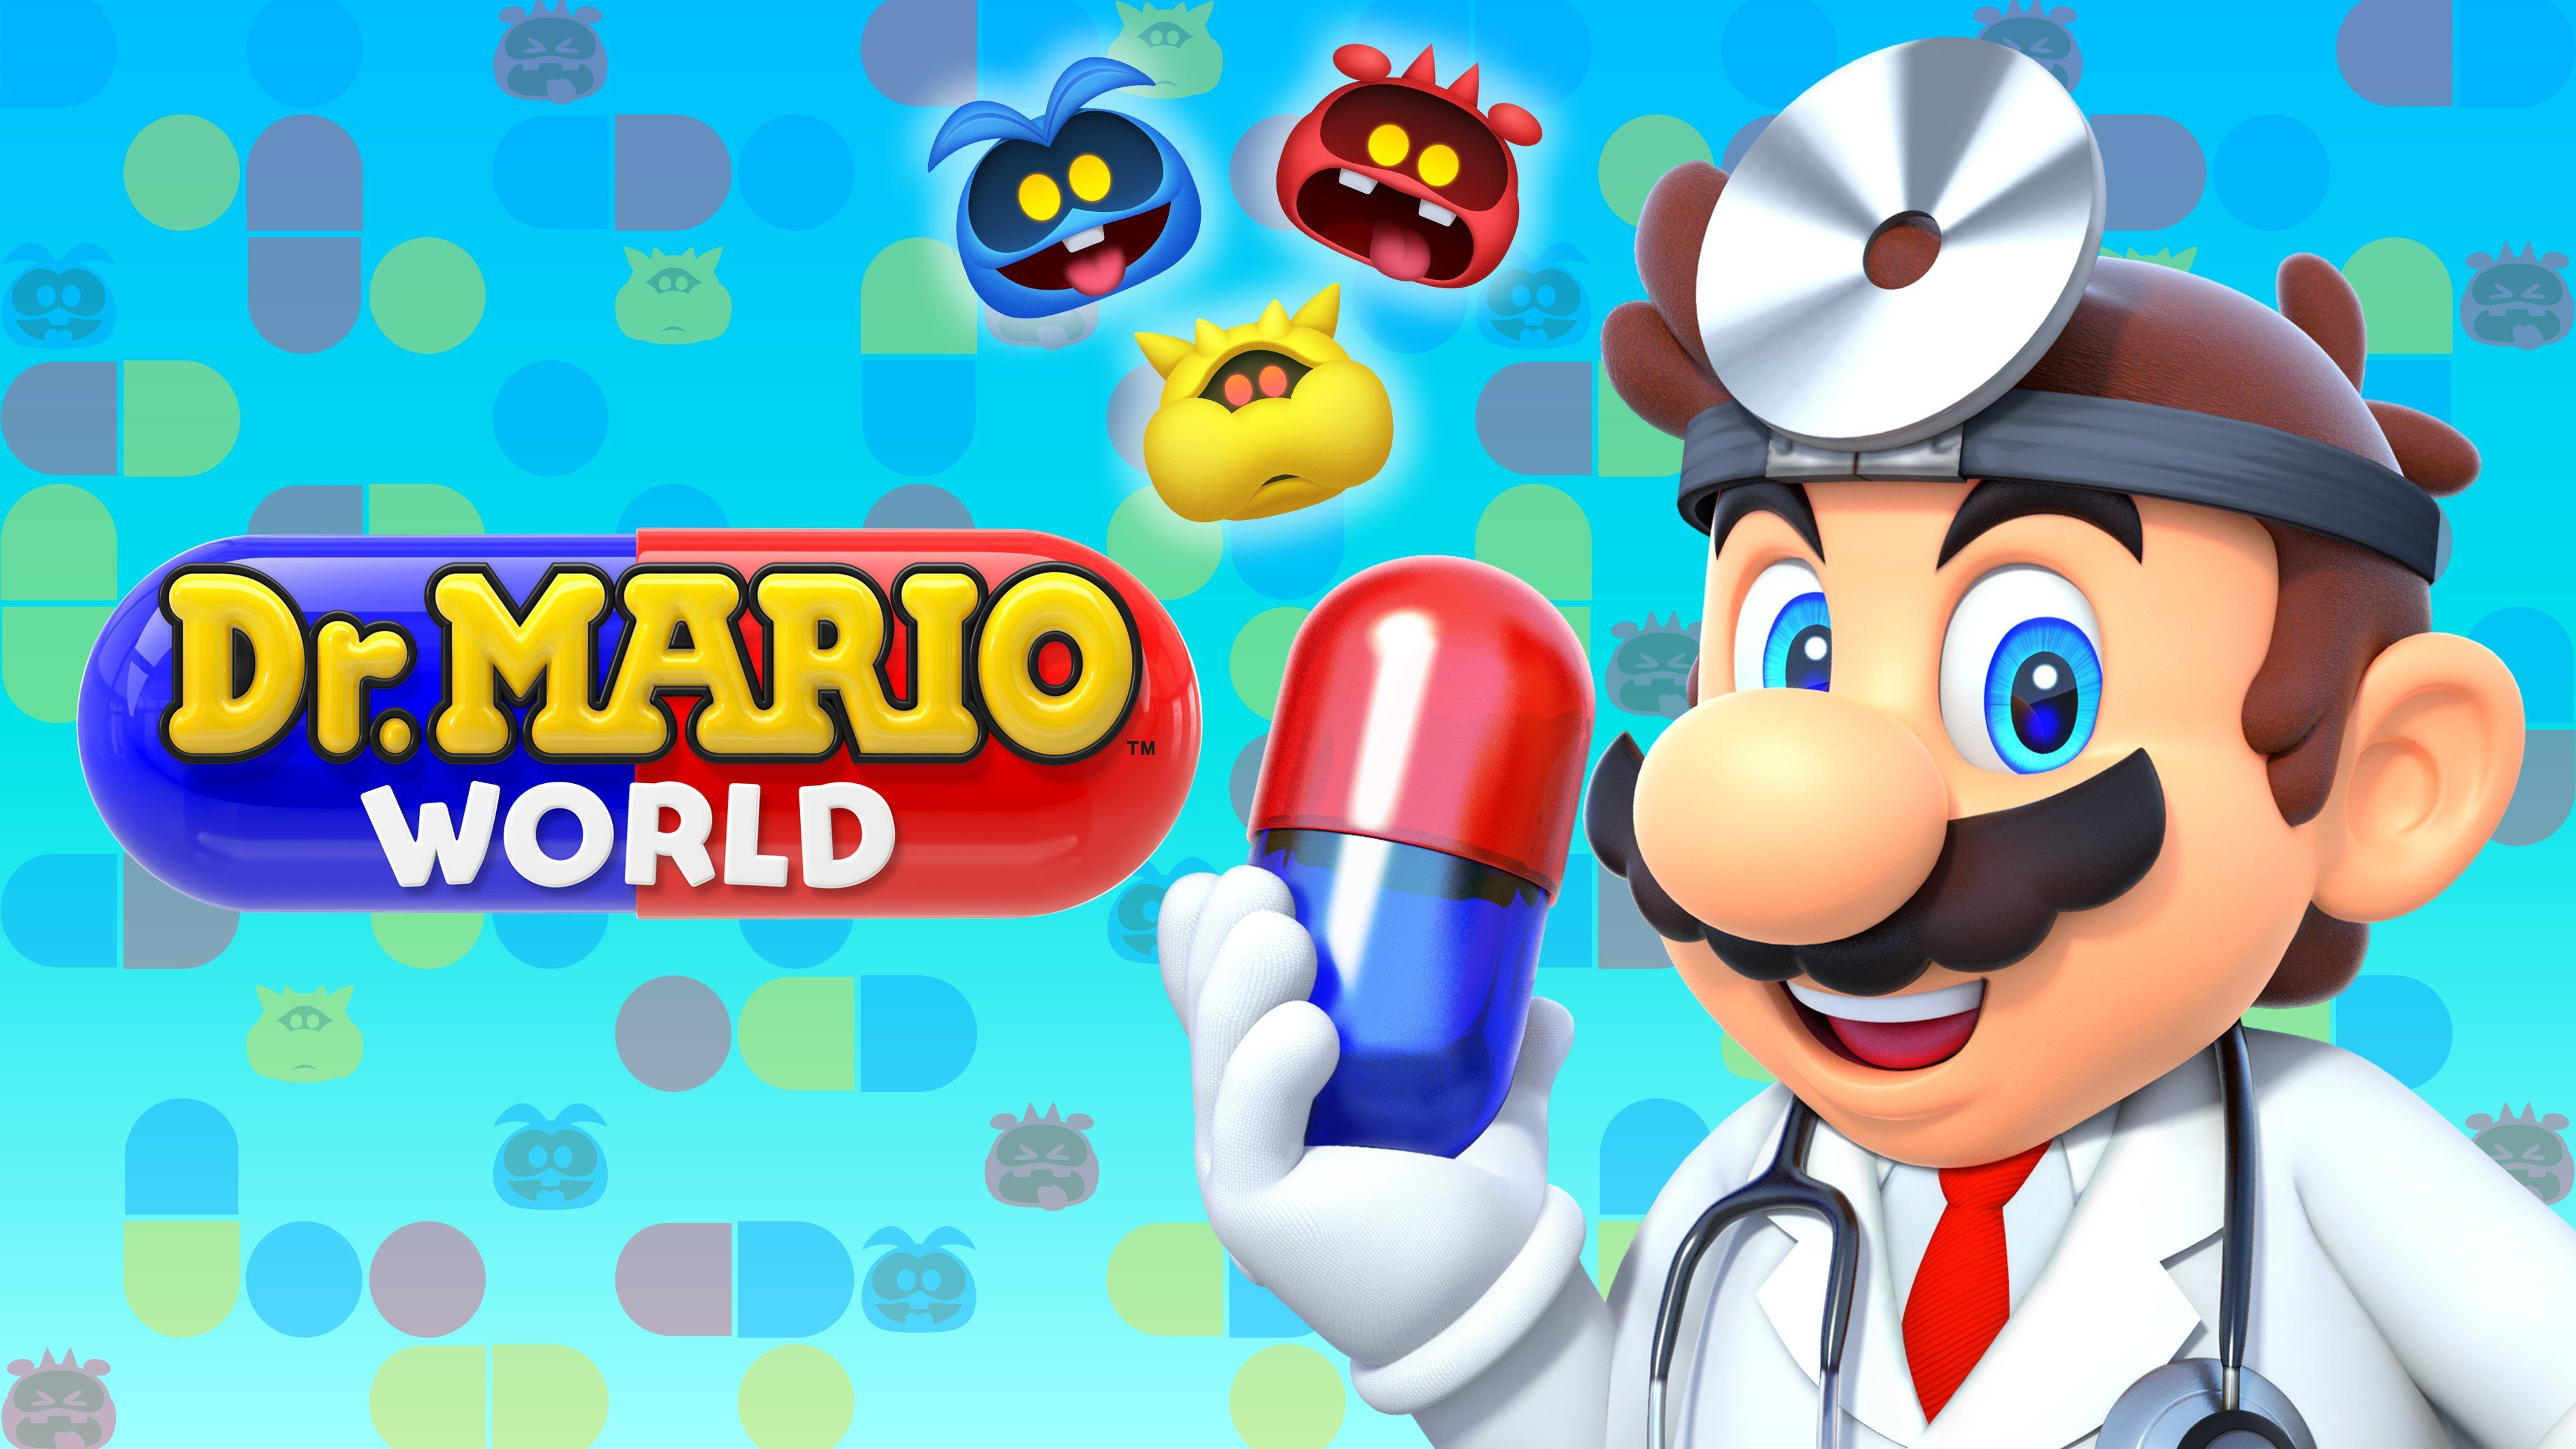 Nintendo's next mobile game is Dr Mario World, and it's